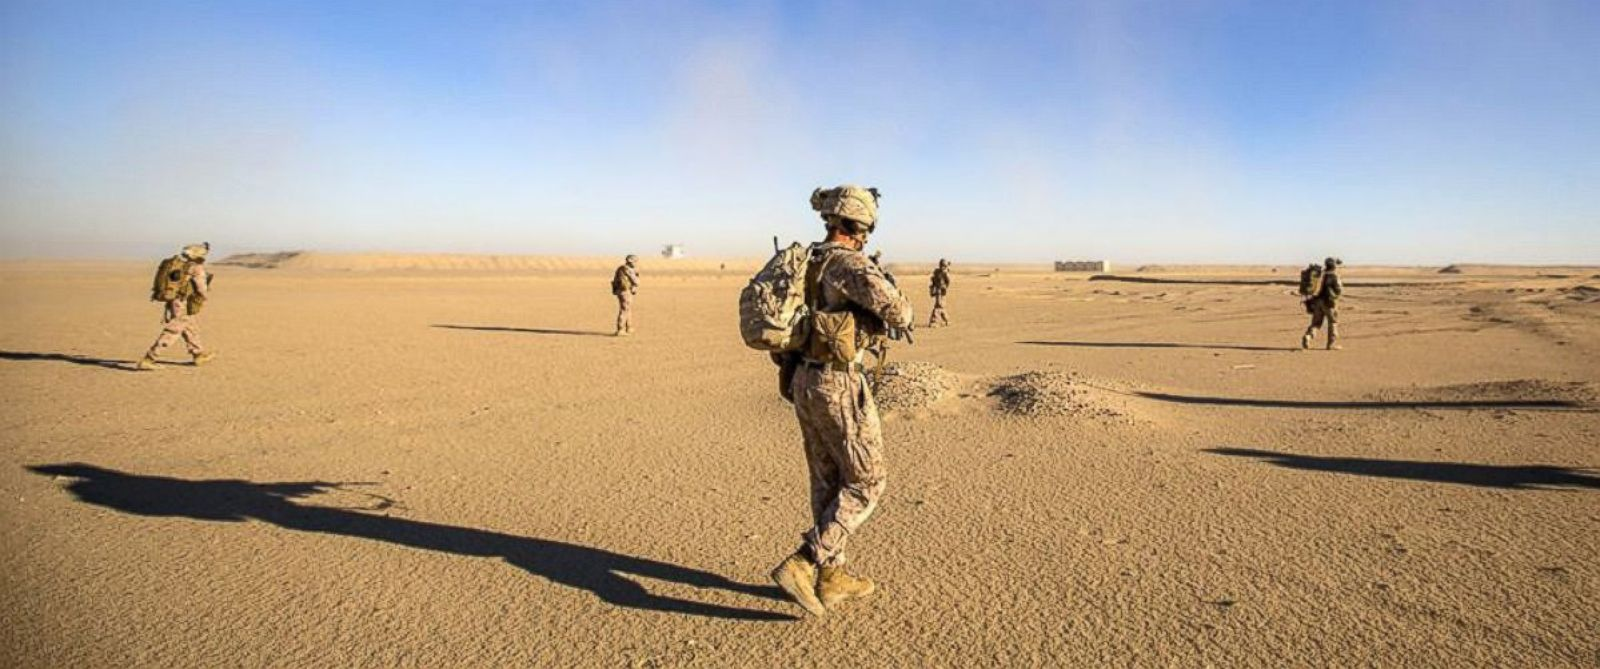 PHOTO: In this file photo,U.S. Marines patrol during a tactical exercise at an undisclosed location in Southwest Asia, Dec. 28, 2015.